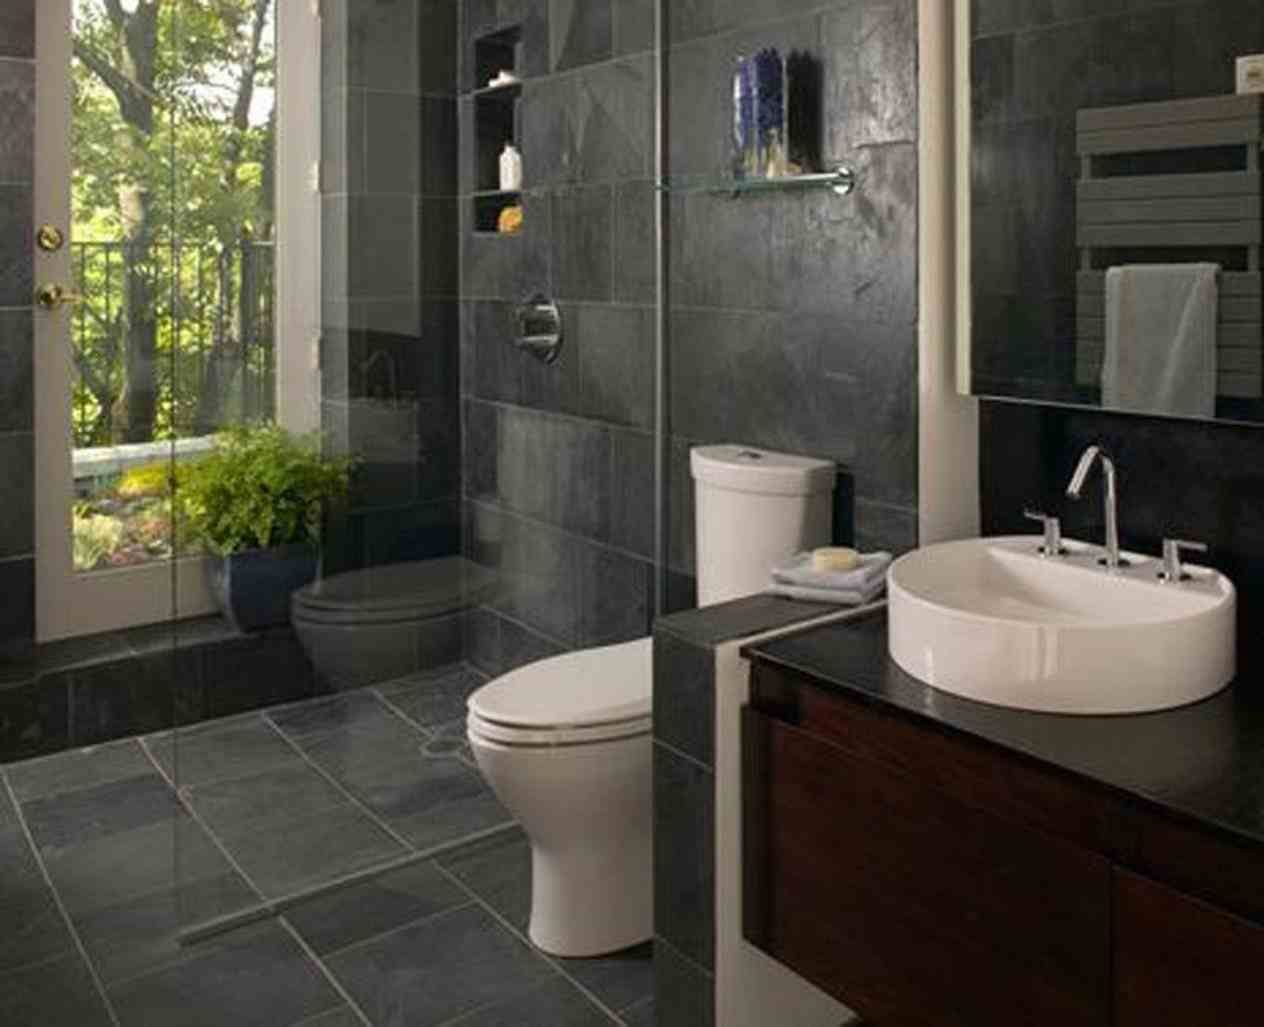 gray and brown bathroom color ideas. New Post Gray And Brown Bathroom Color Ideas Visit Bobayule Trending Decors